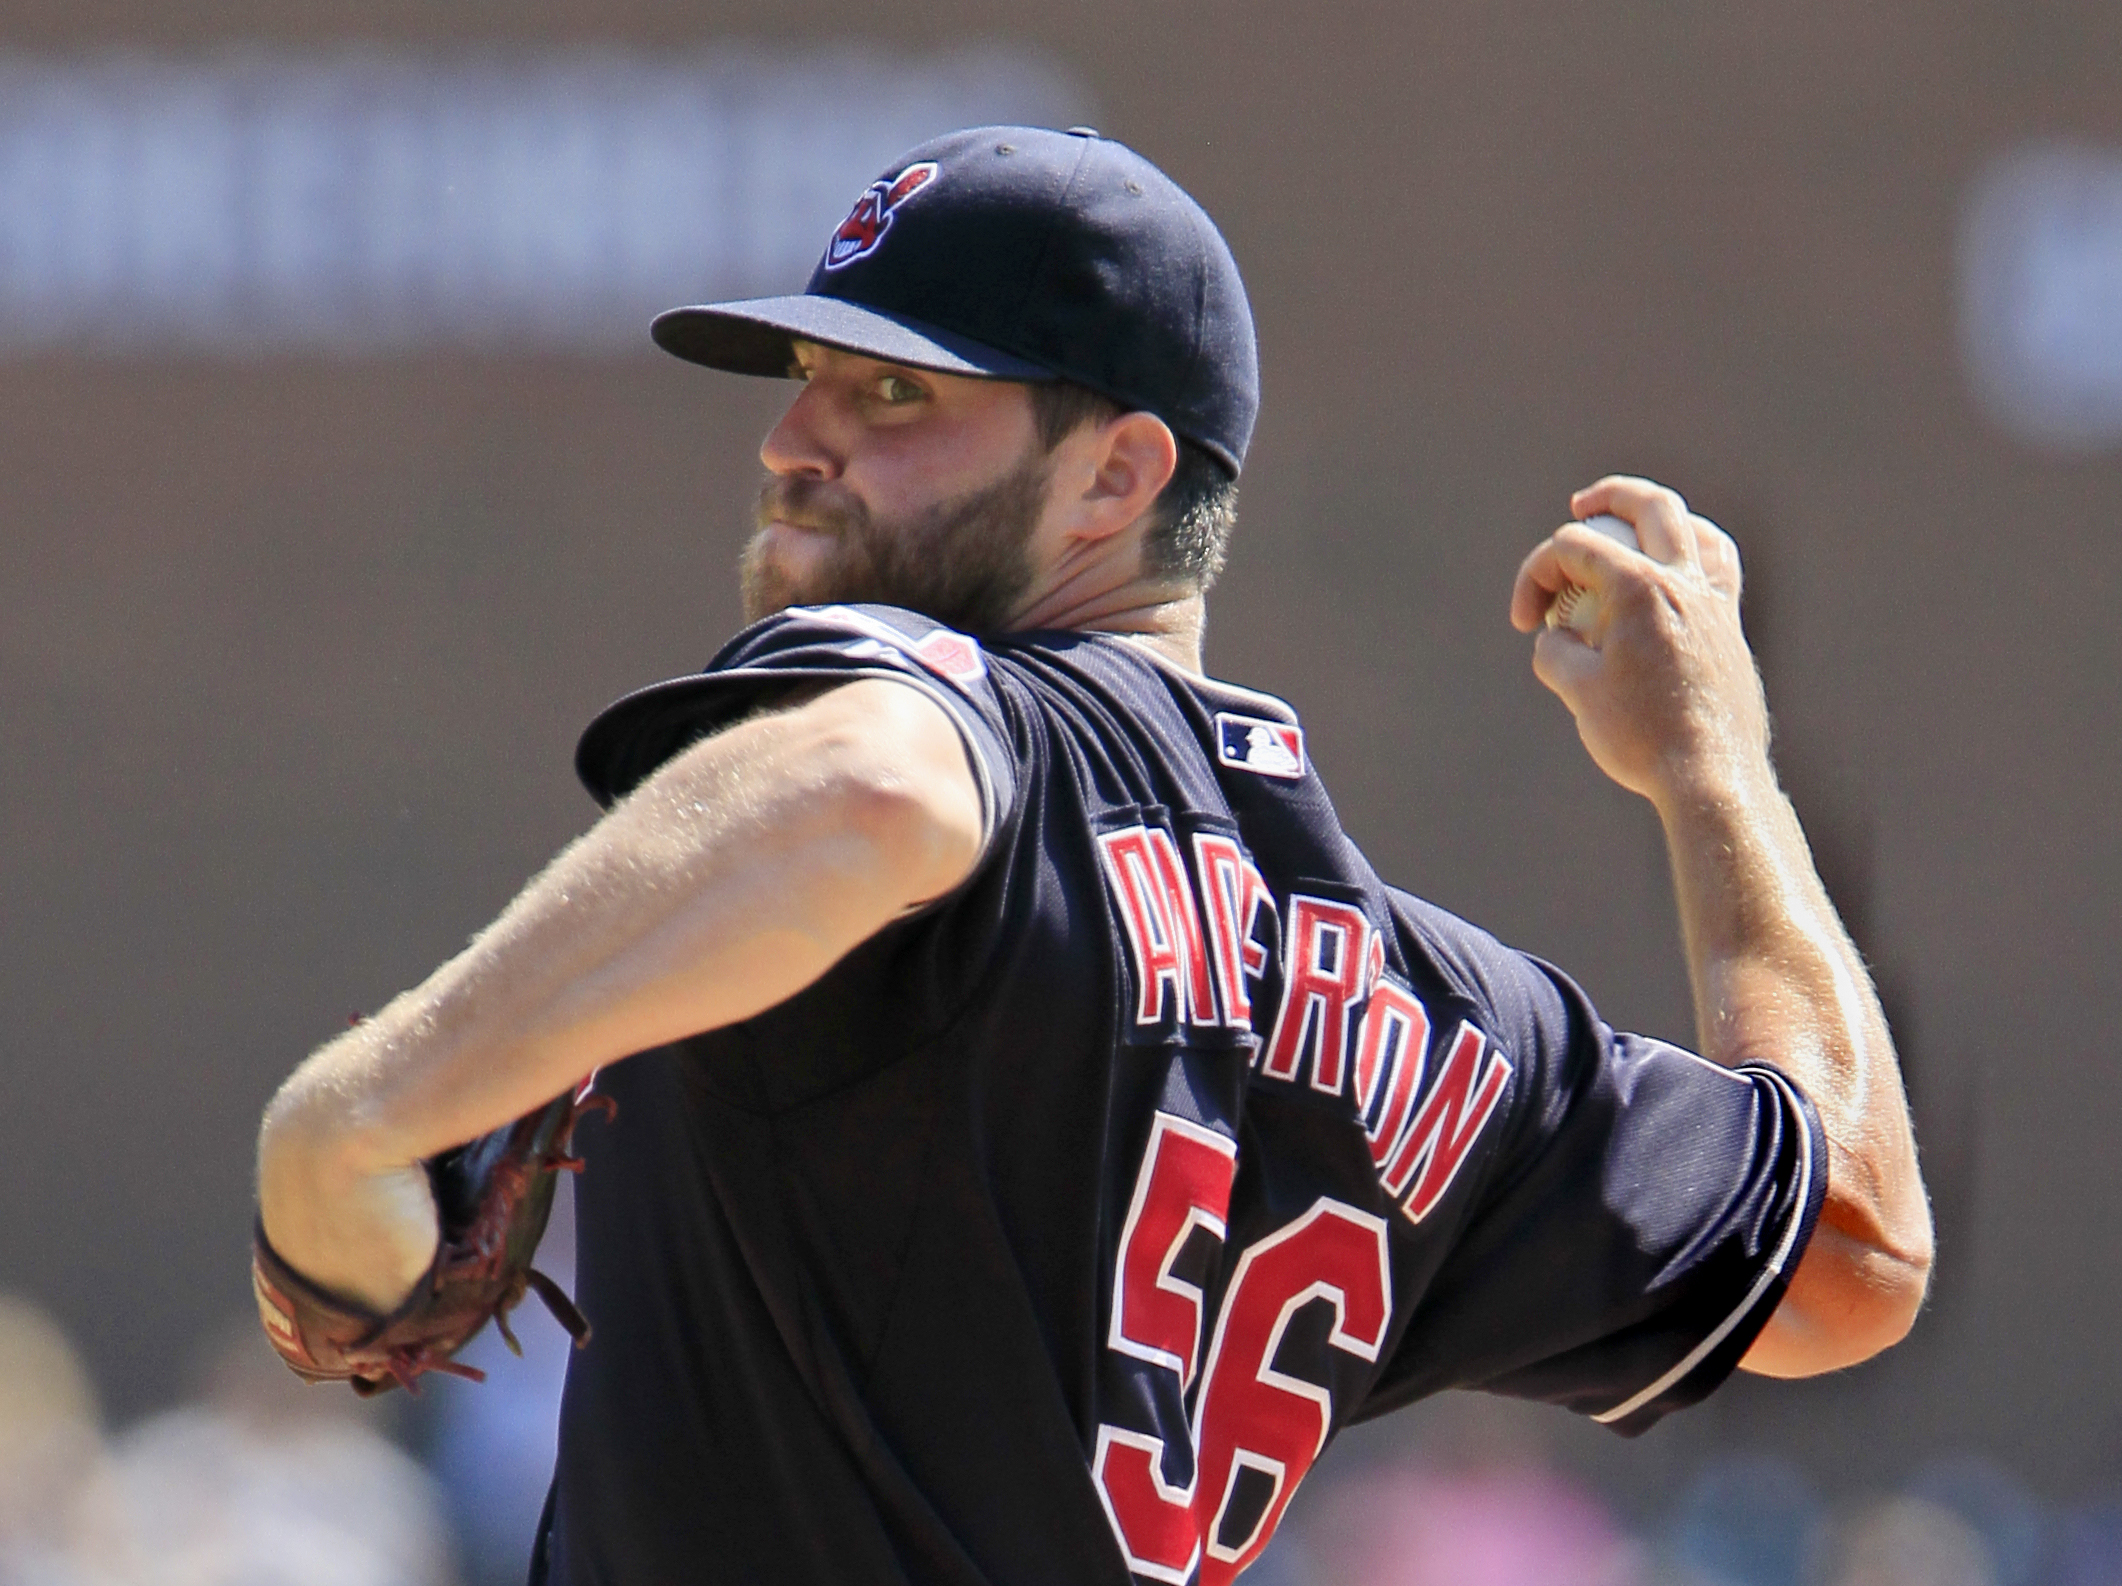 Cleveland Indians' Cody Anderson pitches against the Detroit Tigers during the first inning of a baseball game Sunday, Sept. 6, 2015, in Detroit. (AP Photo/Duane Burleson)